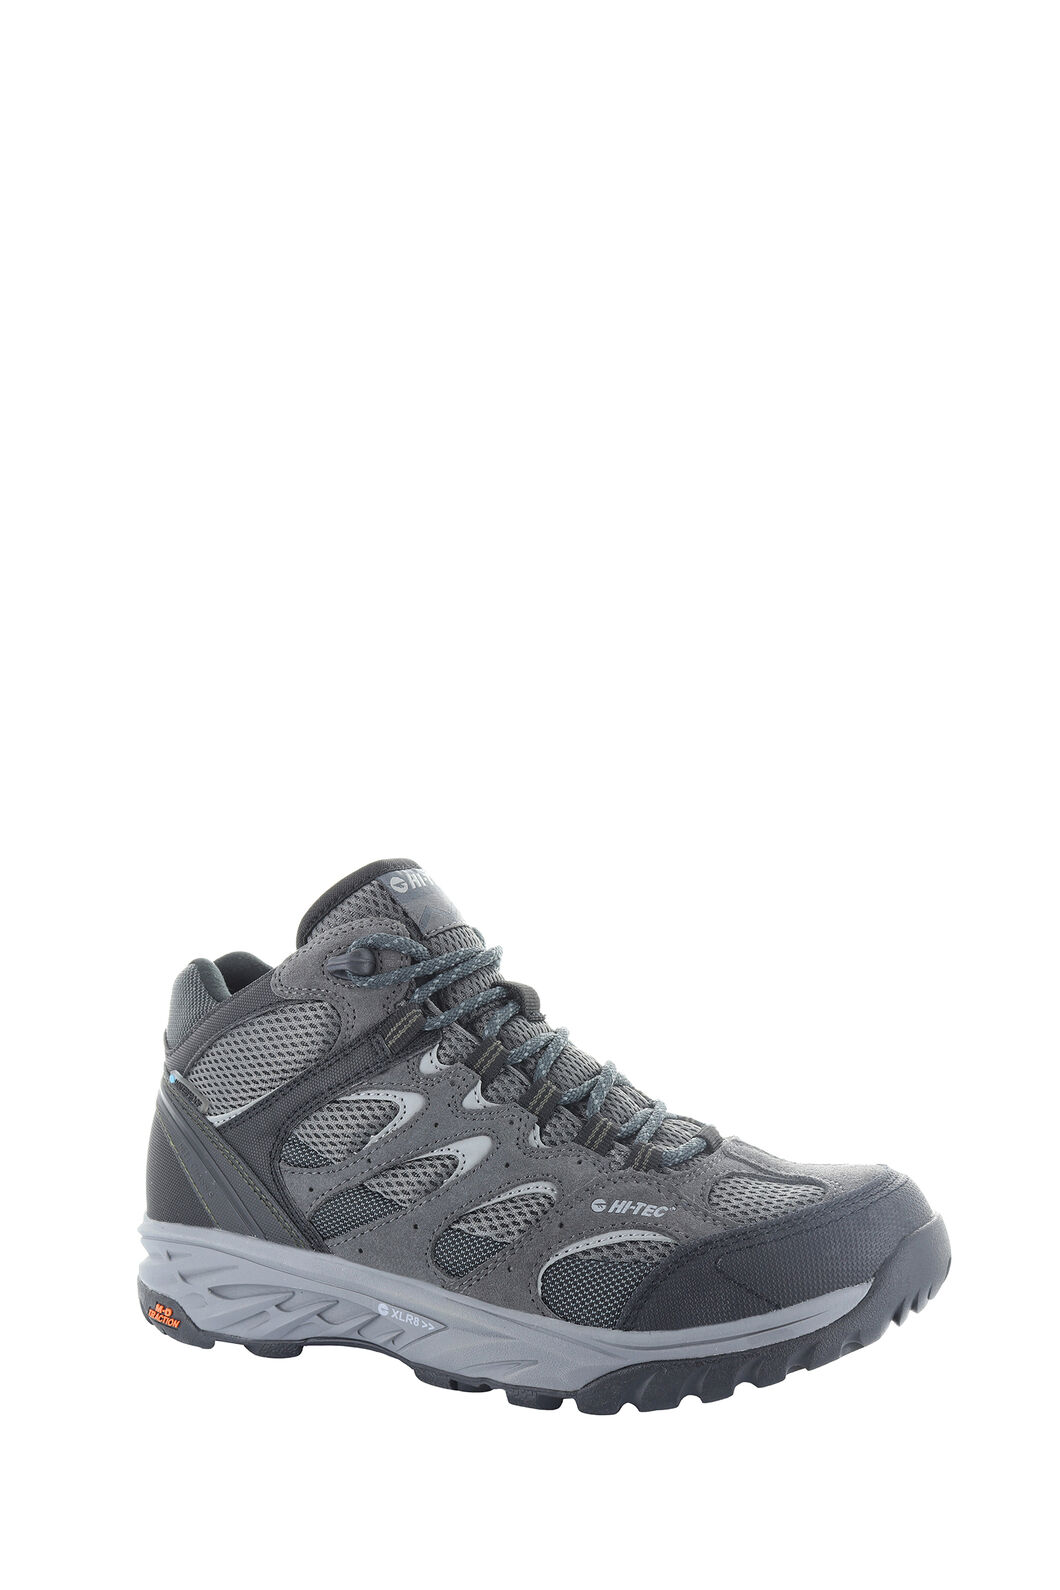 Hi-Tec Wild-Fire Mid I WP - Men's, Charcoal/Black/Olive Night, hi-res